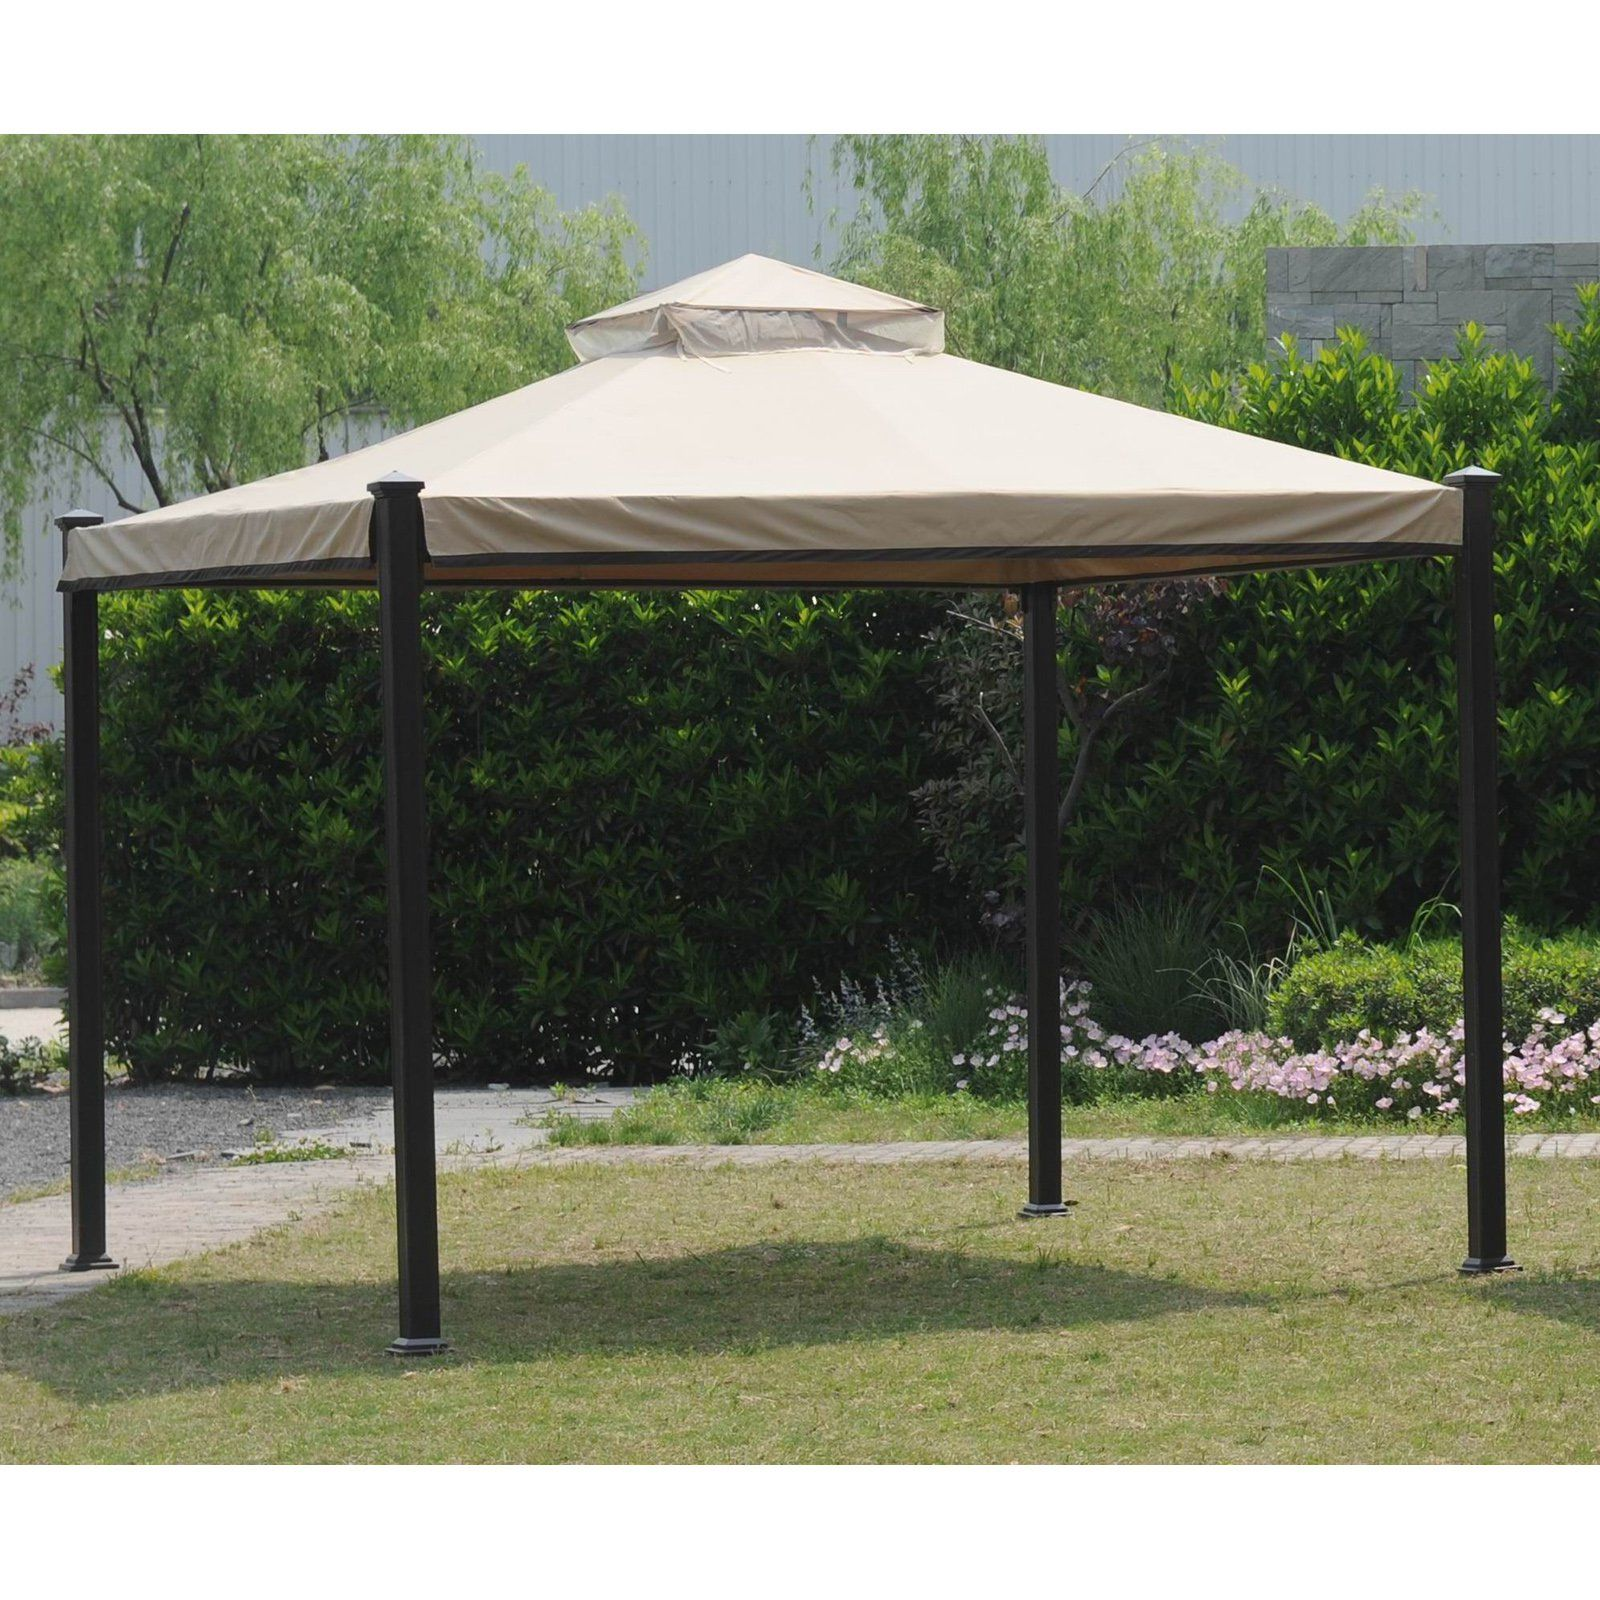 Sunjoy 10 X 10 Ft Replacement Canopy Cover For L Gz526pst Everton Gazebo Outdoor Shade Gazebo Canopy Cover